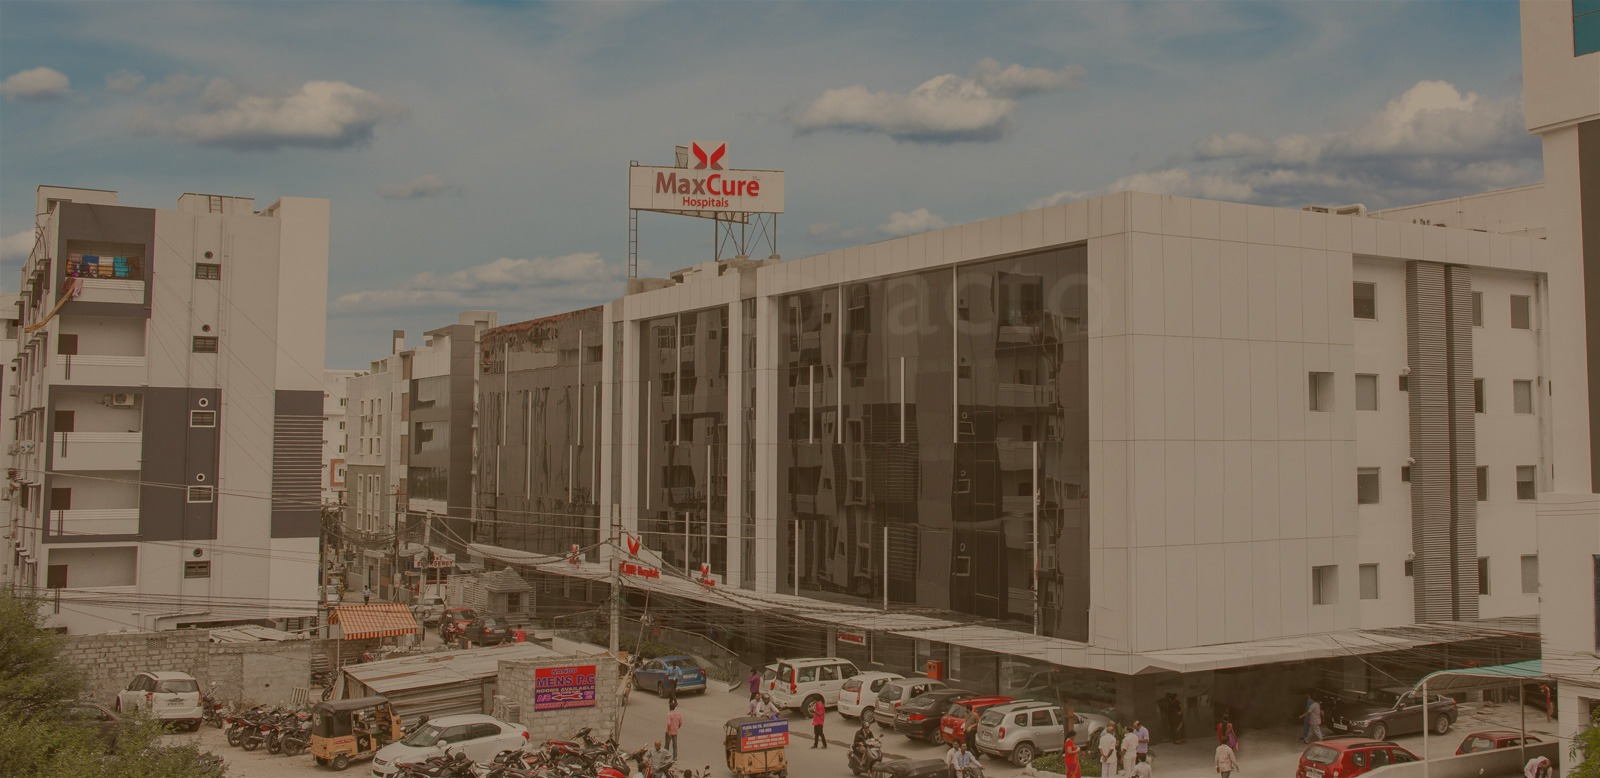 maxcure-hospital-hyderbad-india